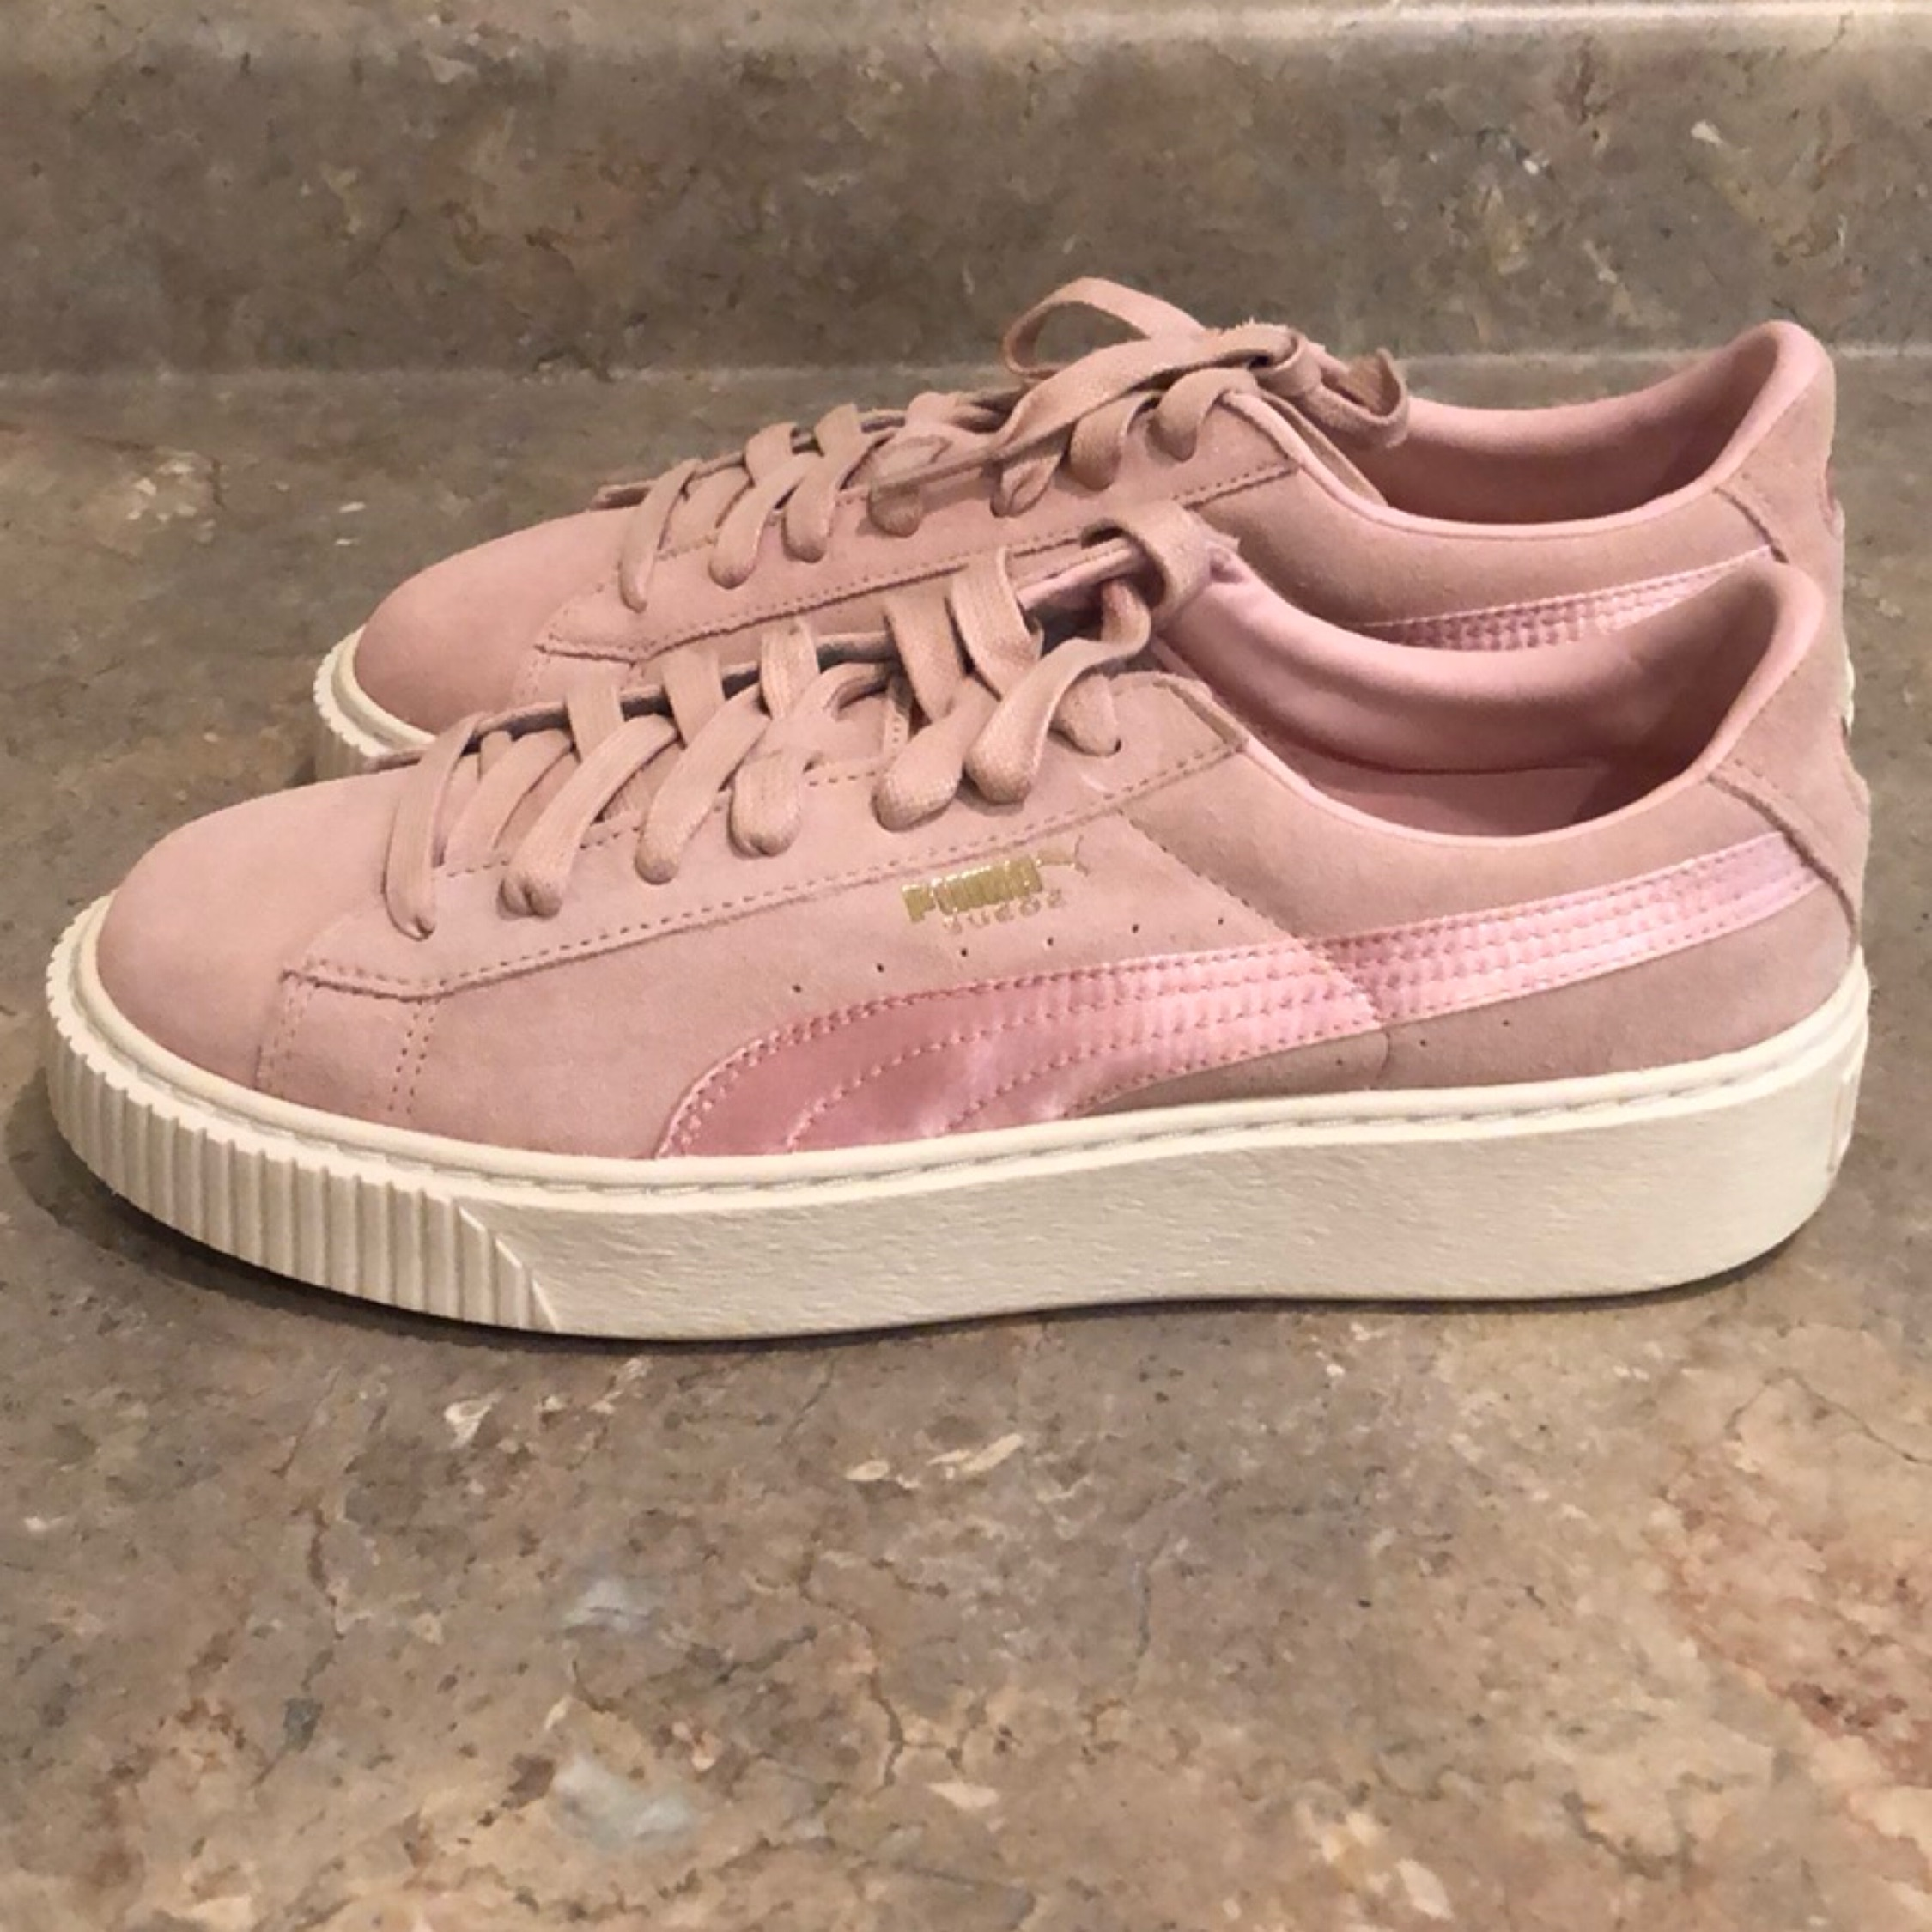 fast color offer clear and distinctive Puma Pink Suede Platform Sneakers